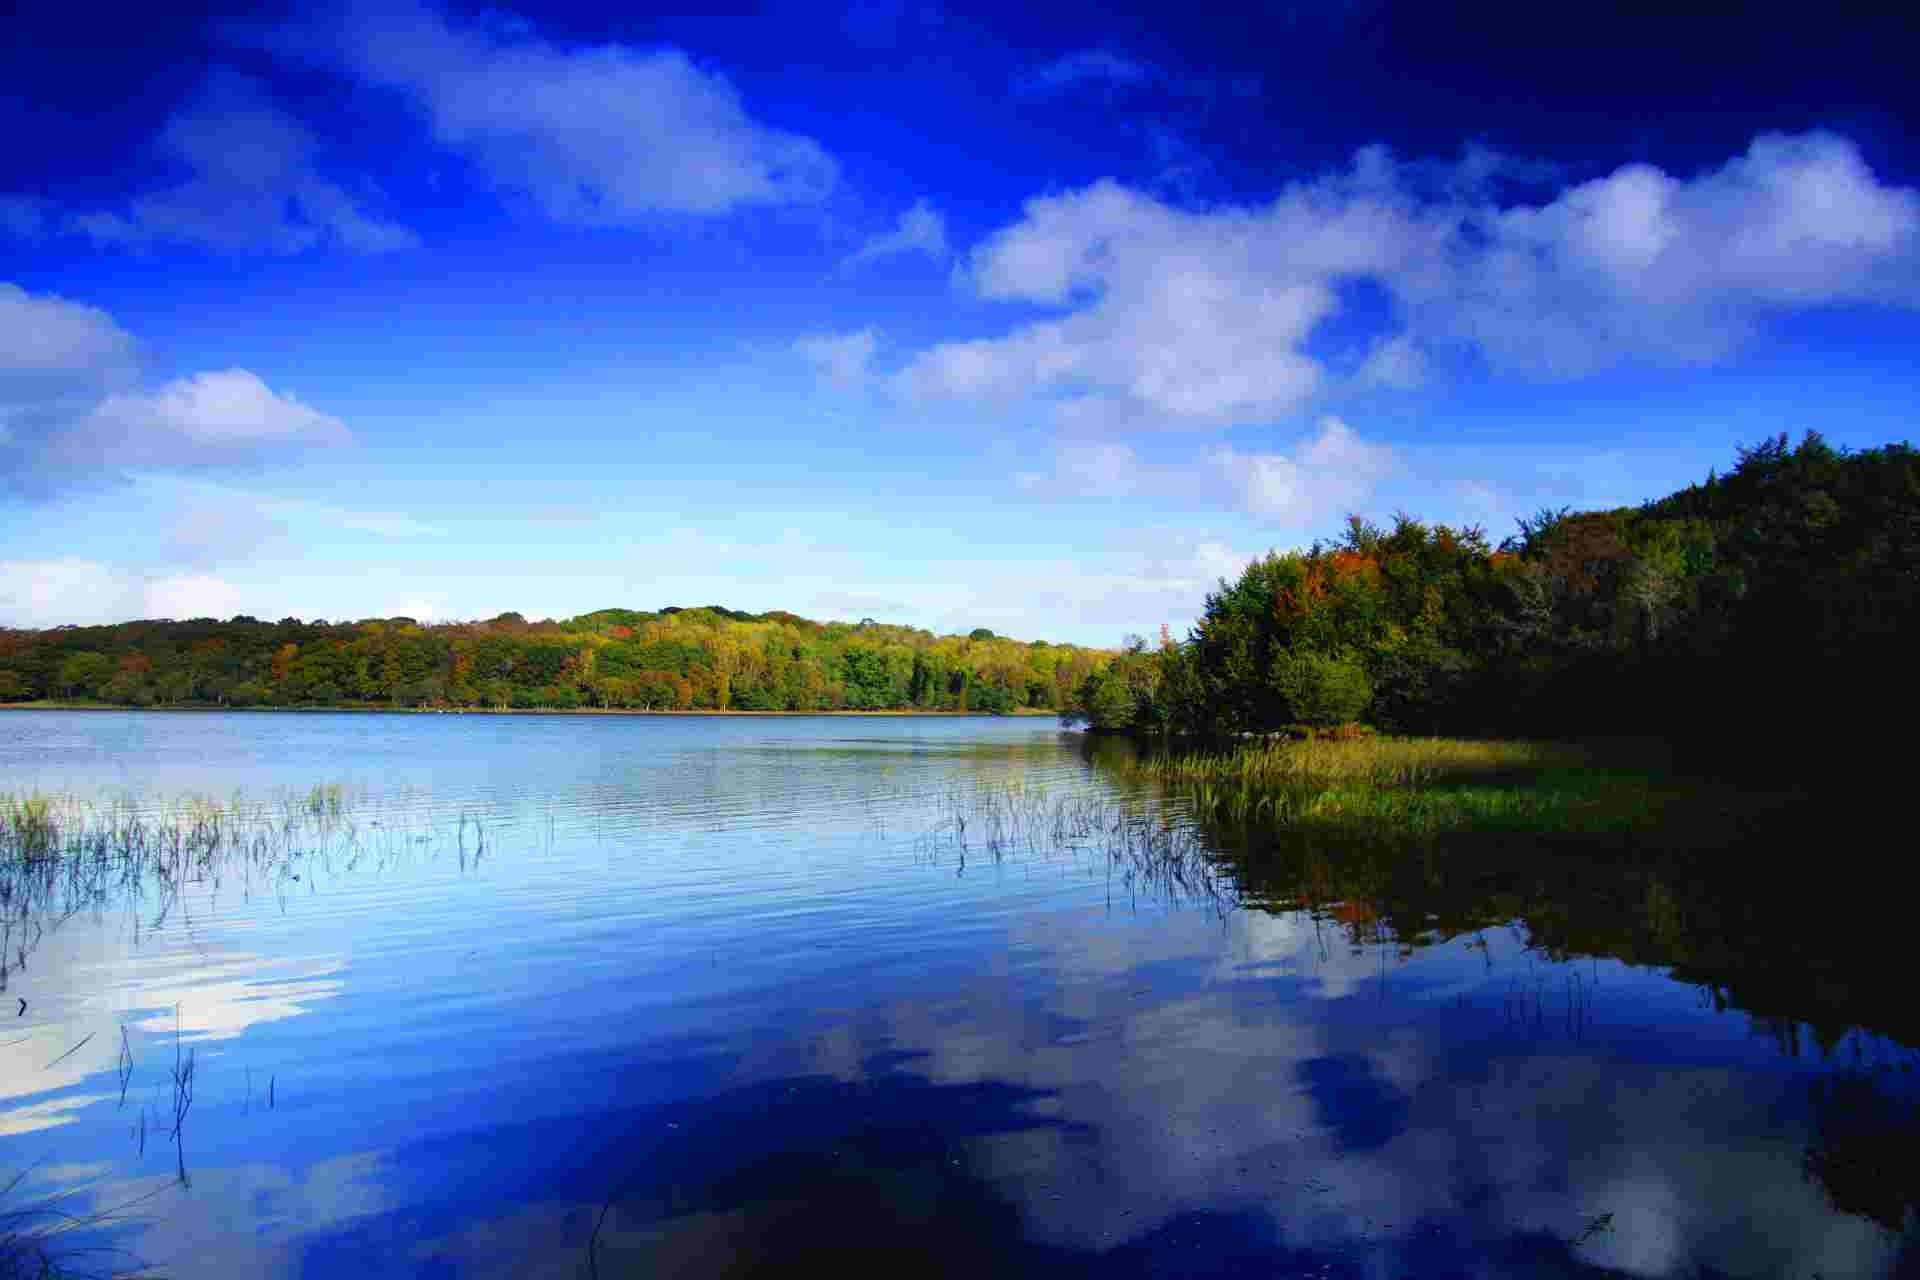 Image of Lough Erne